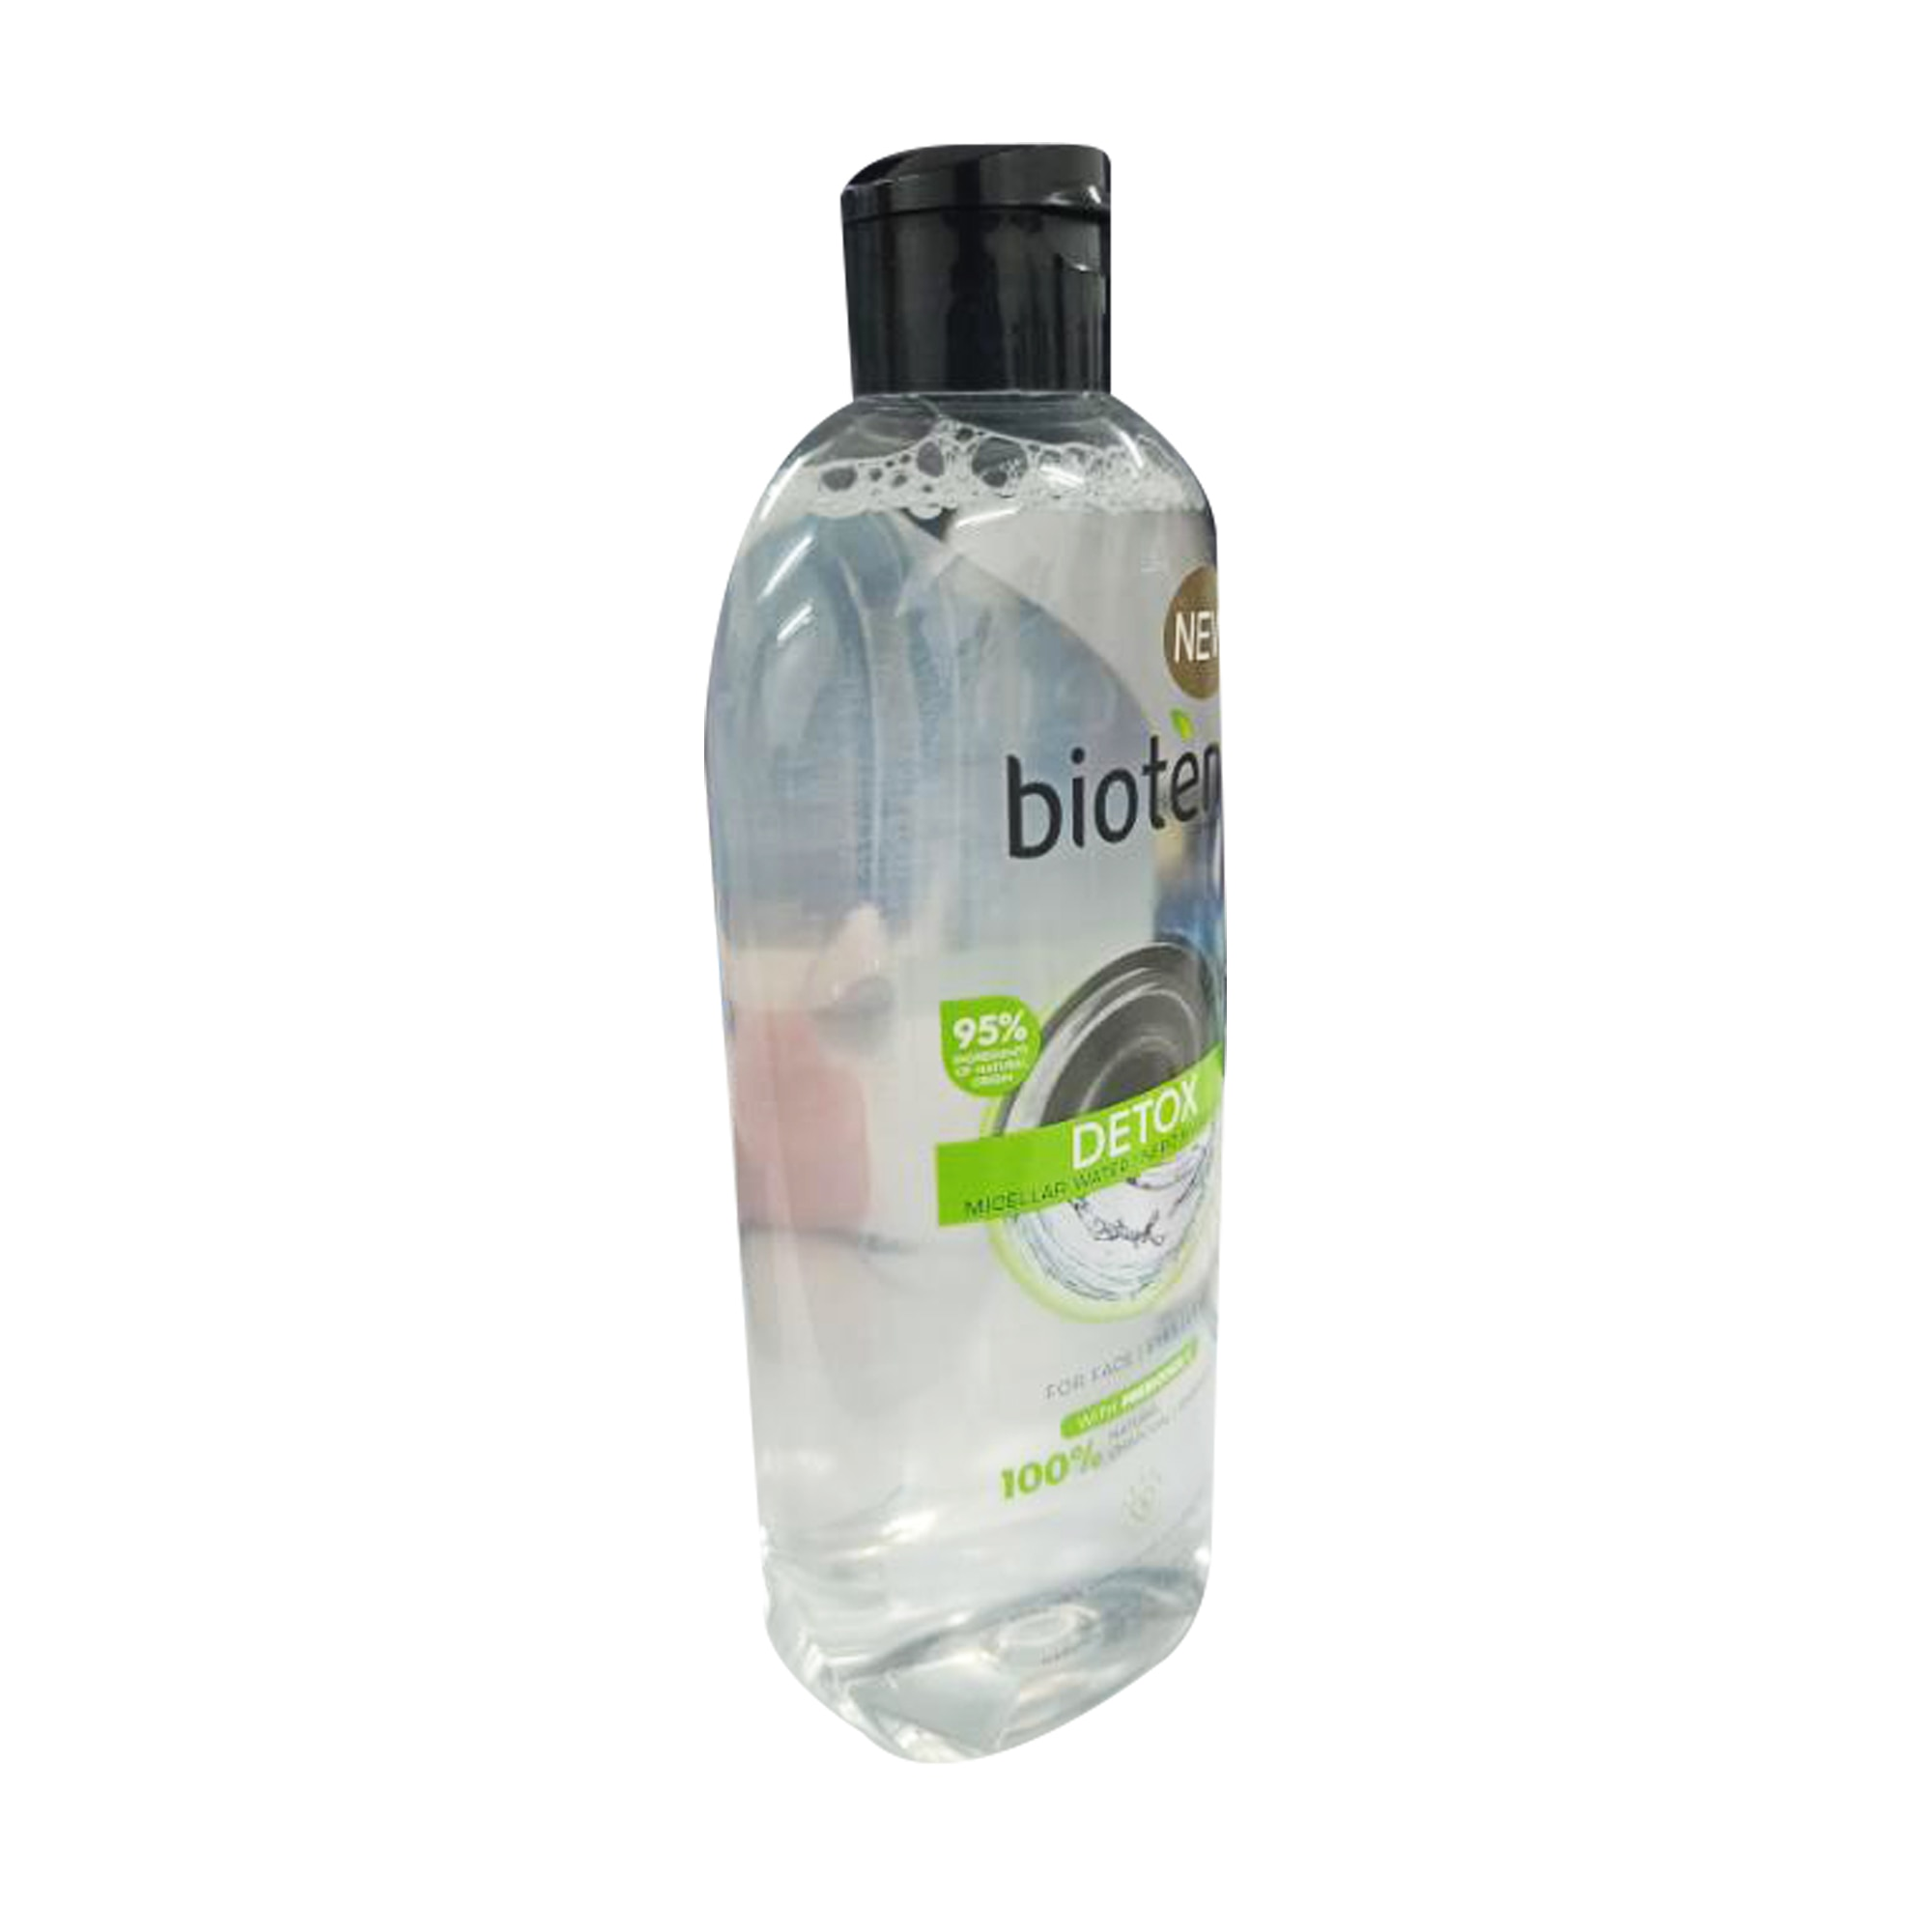 BIOTENDetox Micellar Water For Face, Eyes And Lips 100% Natural Charcoal 400 ml,For Men